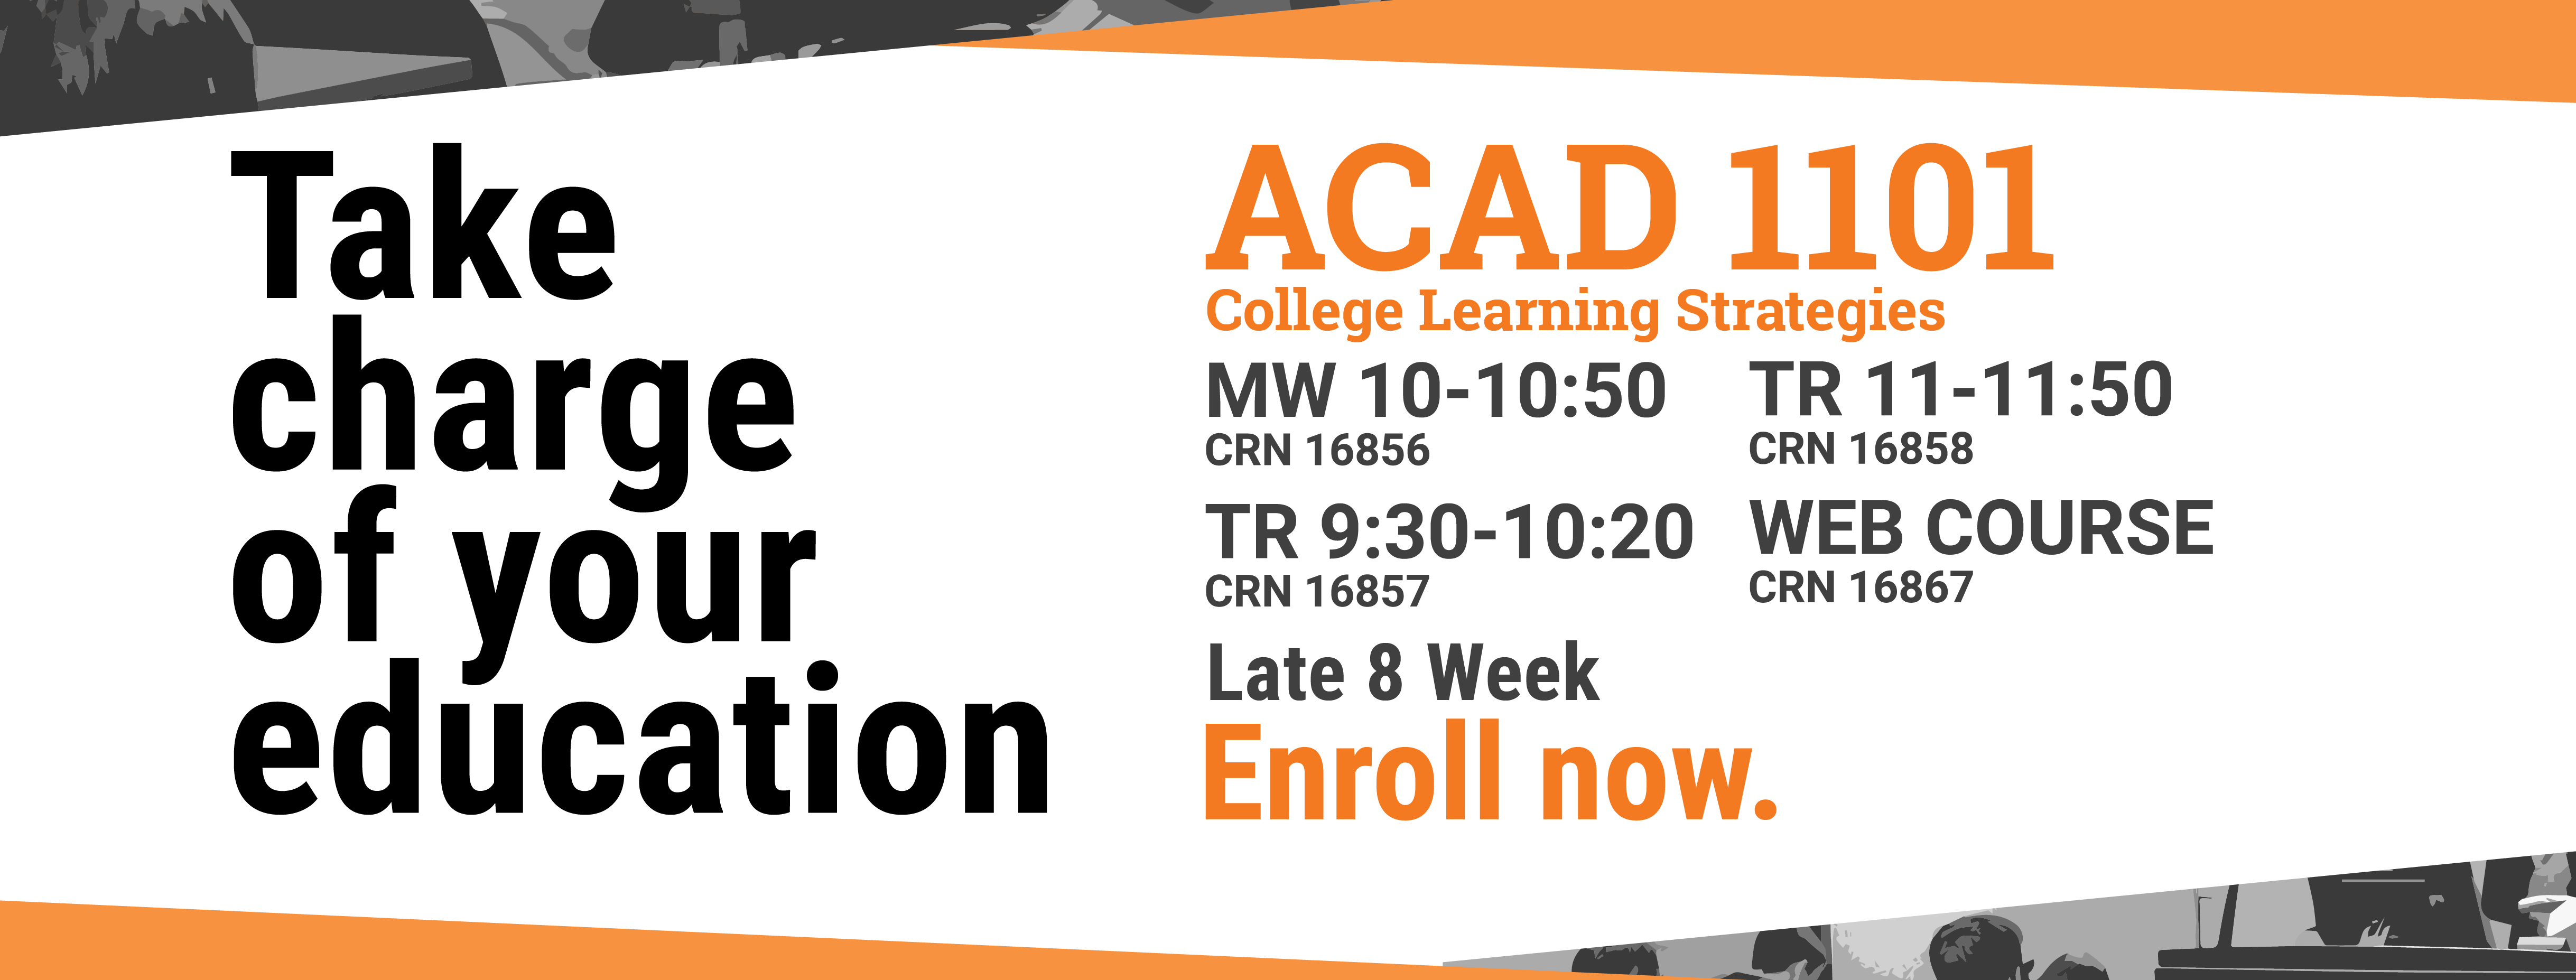 Enroll to ACAD 1101 College Learning Strategies  in bengal web